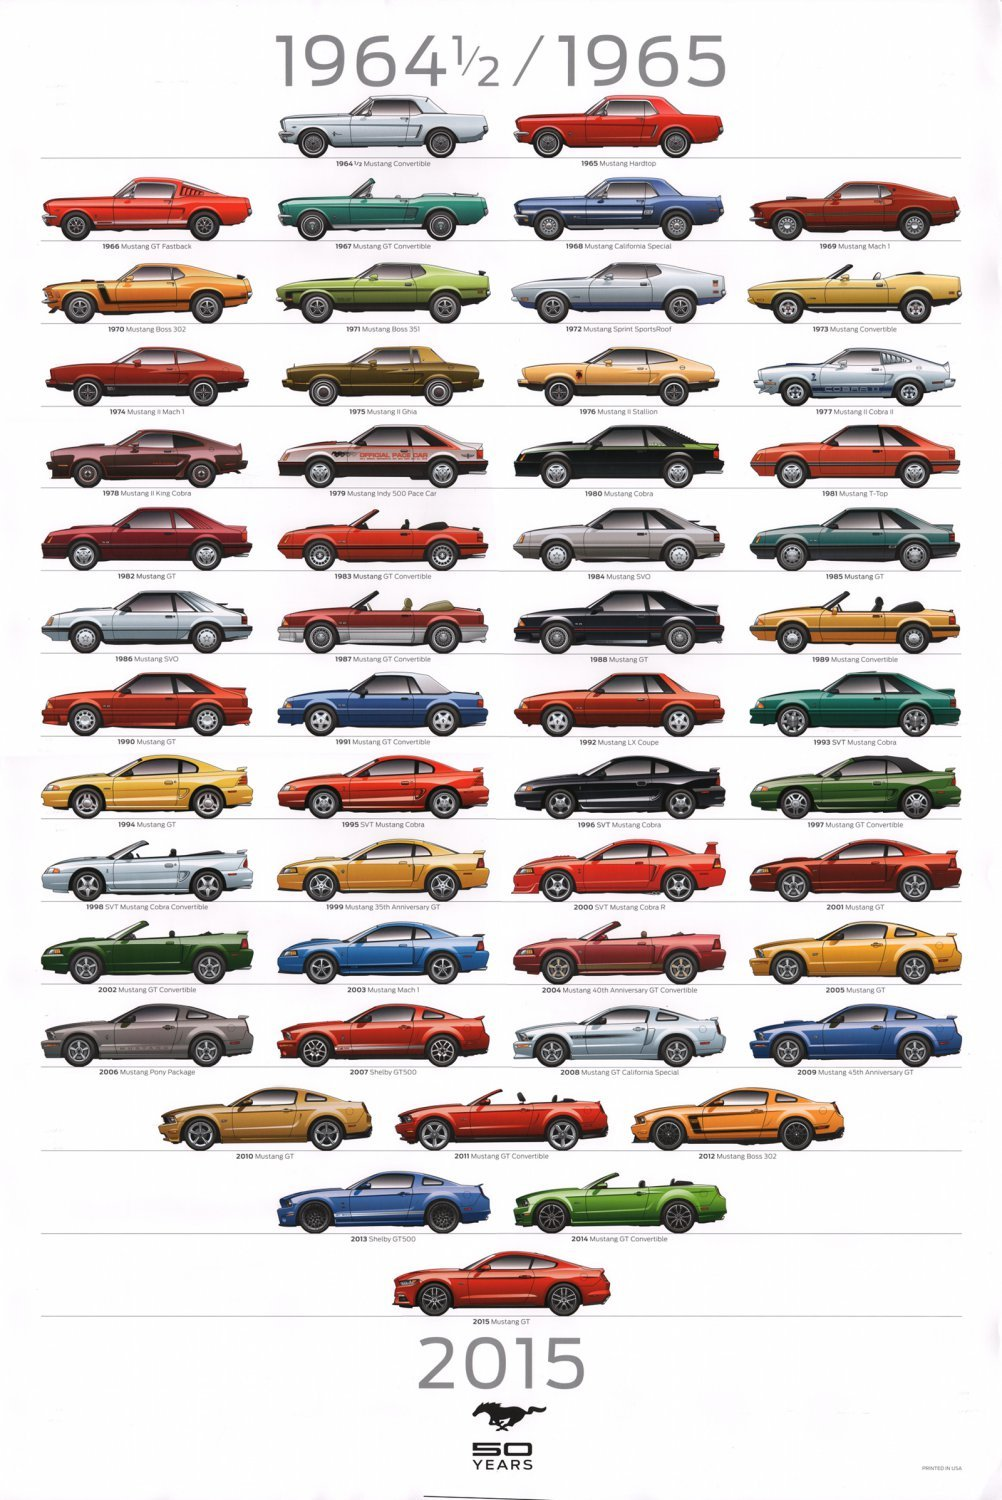 Ford Mustang 50th Anniversary Edition Chart  13x19 inches Poster Print